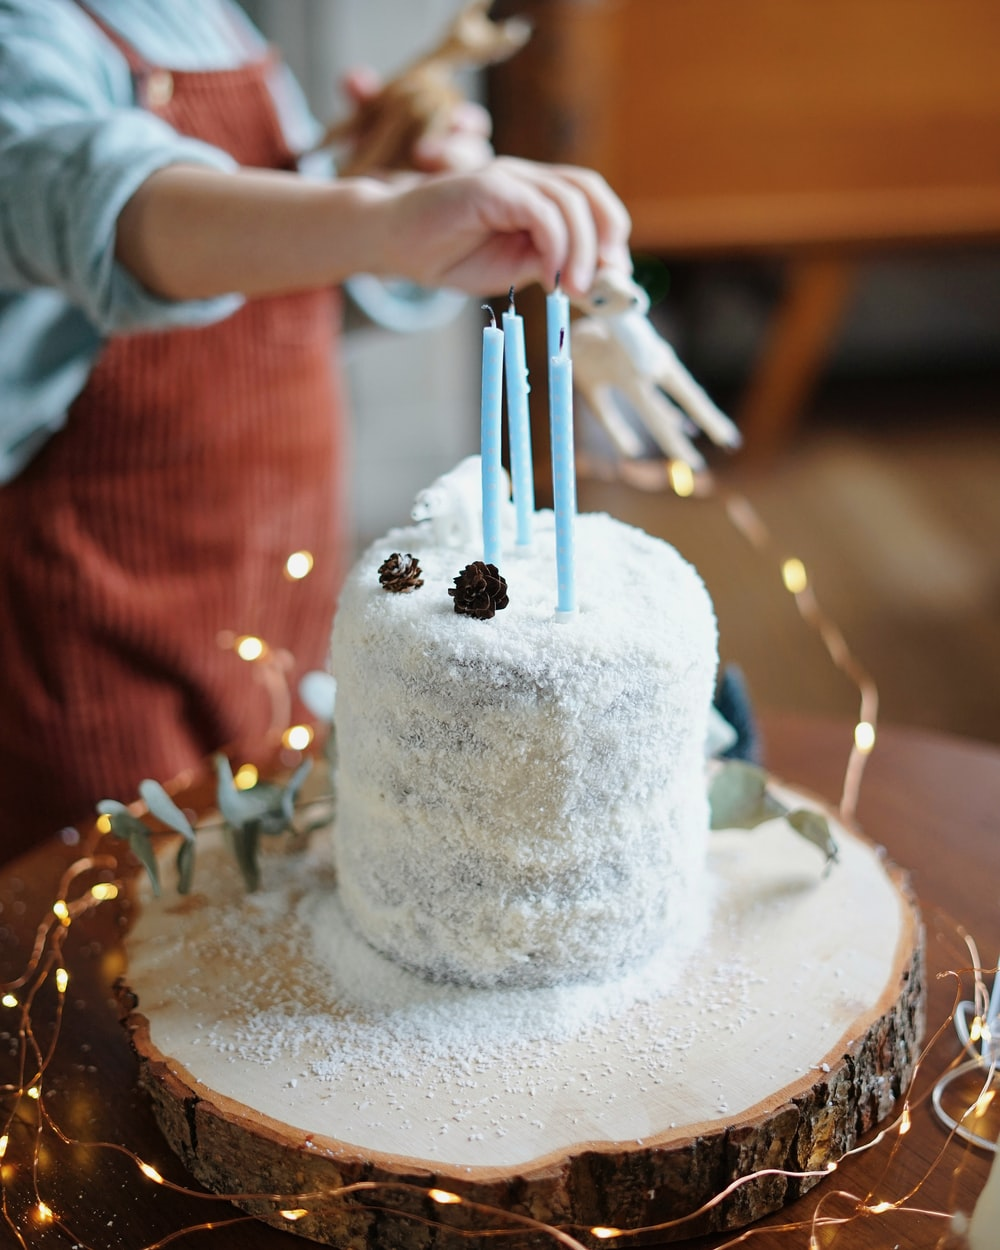 Cake, dessert, food and person | HD photo by Mathilde Merlin